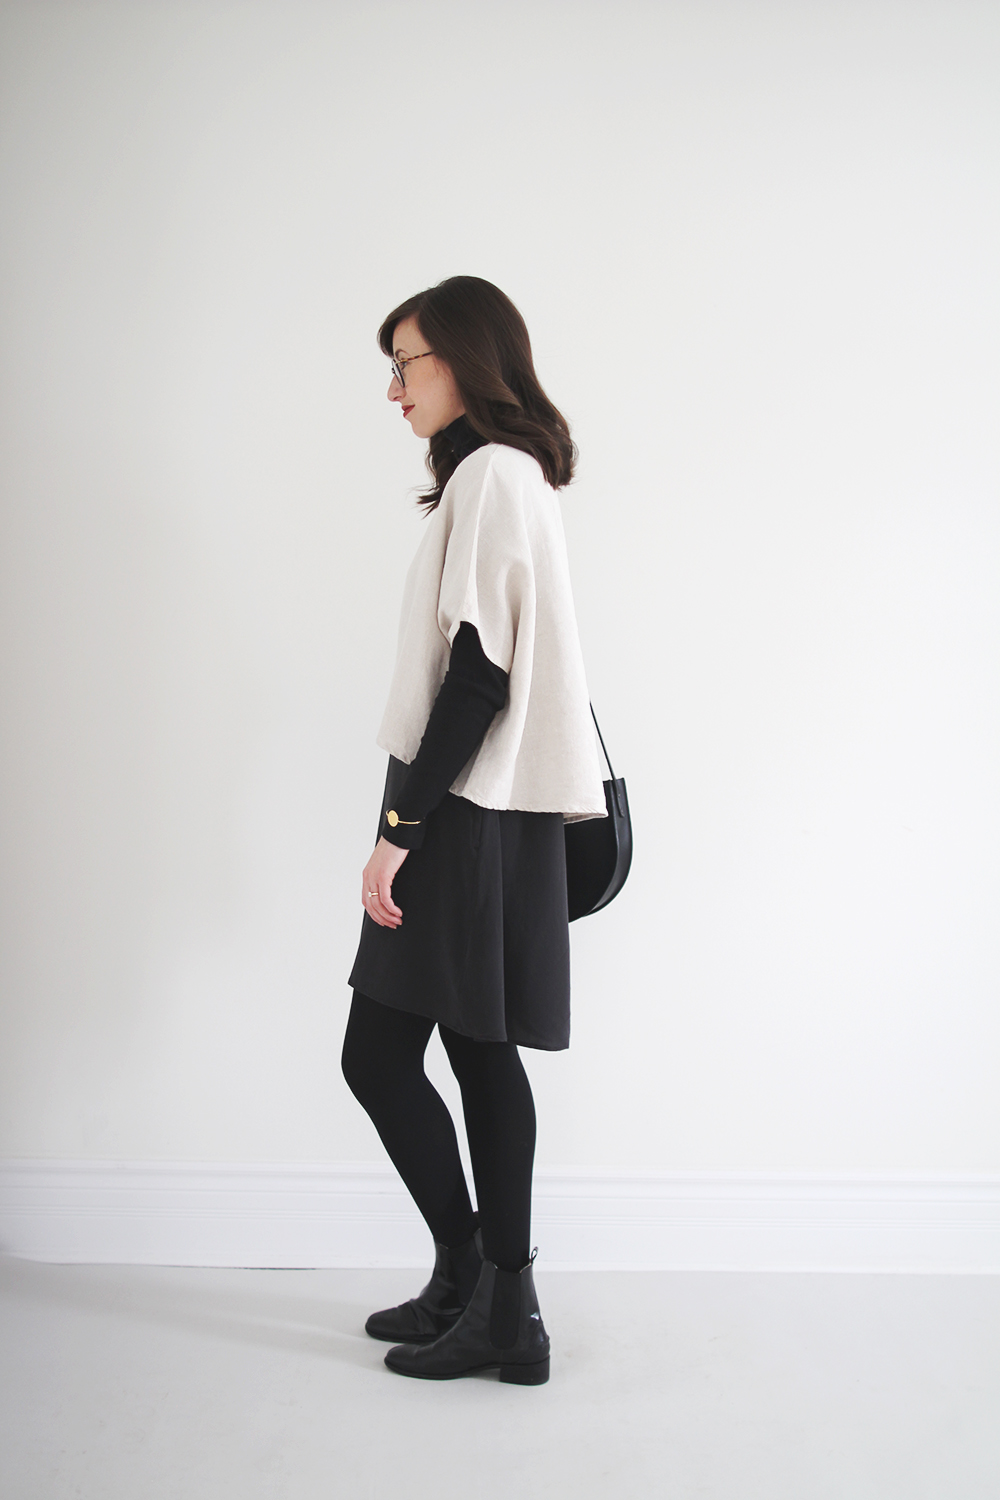 Style Bee - Silk 2 Ways + Tips To Combat Static